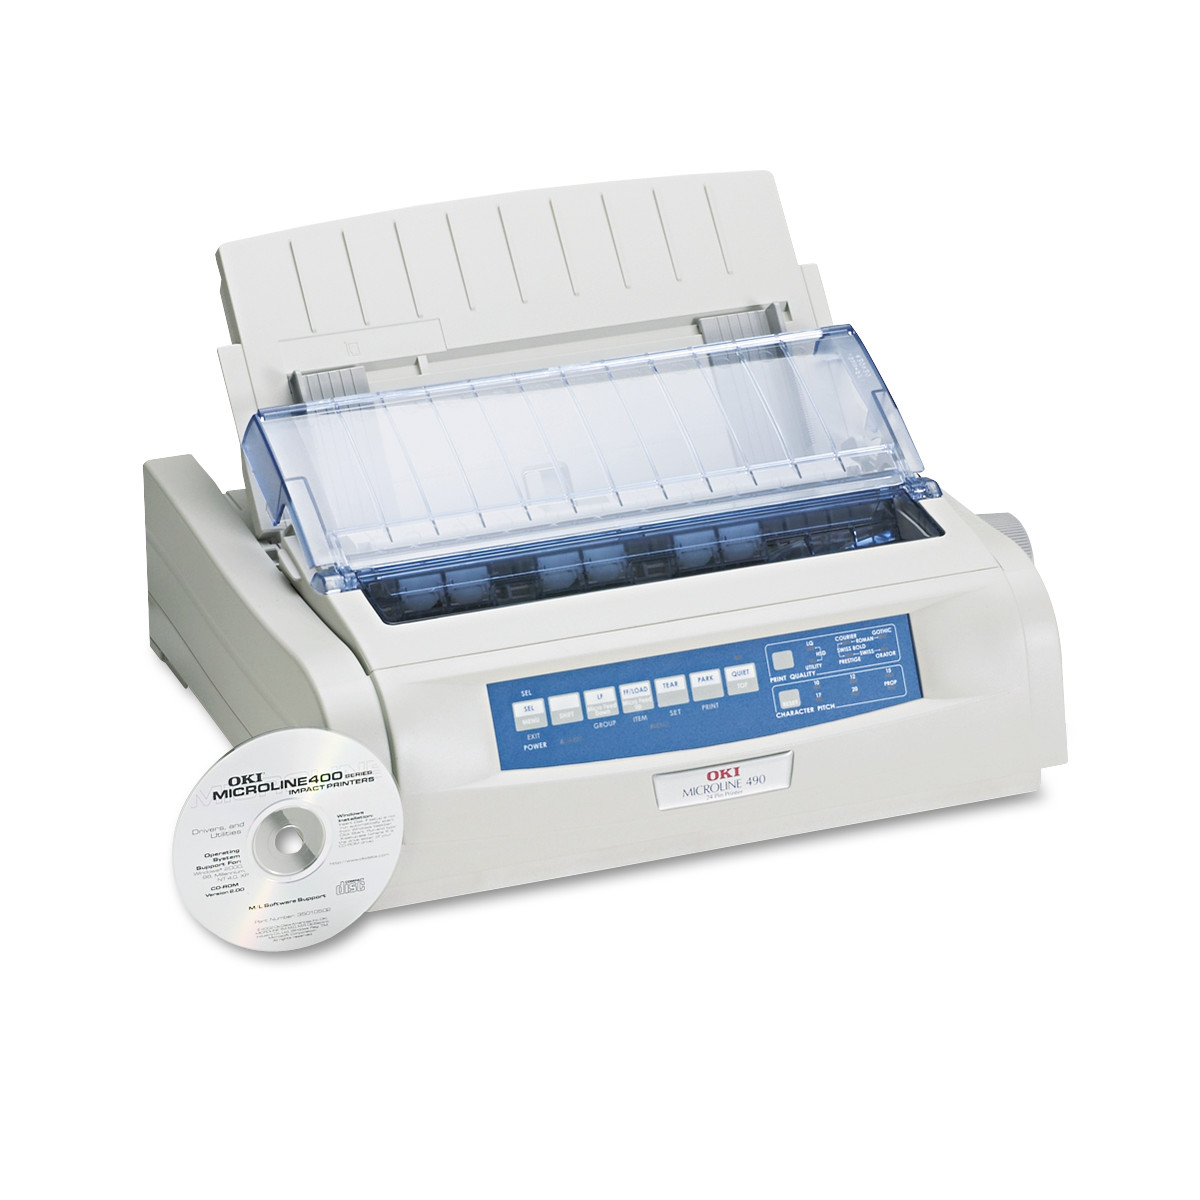 Oki Microline 490 24-Pin Dot Matrix Printer